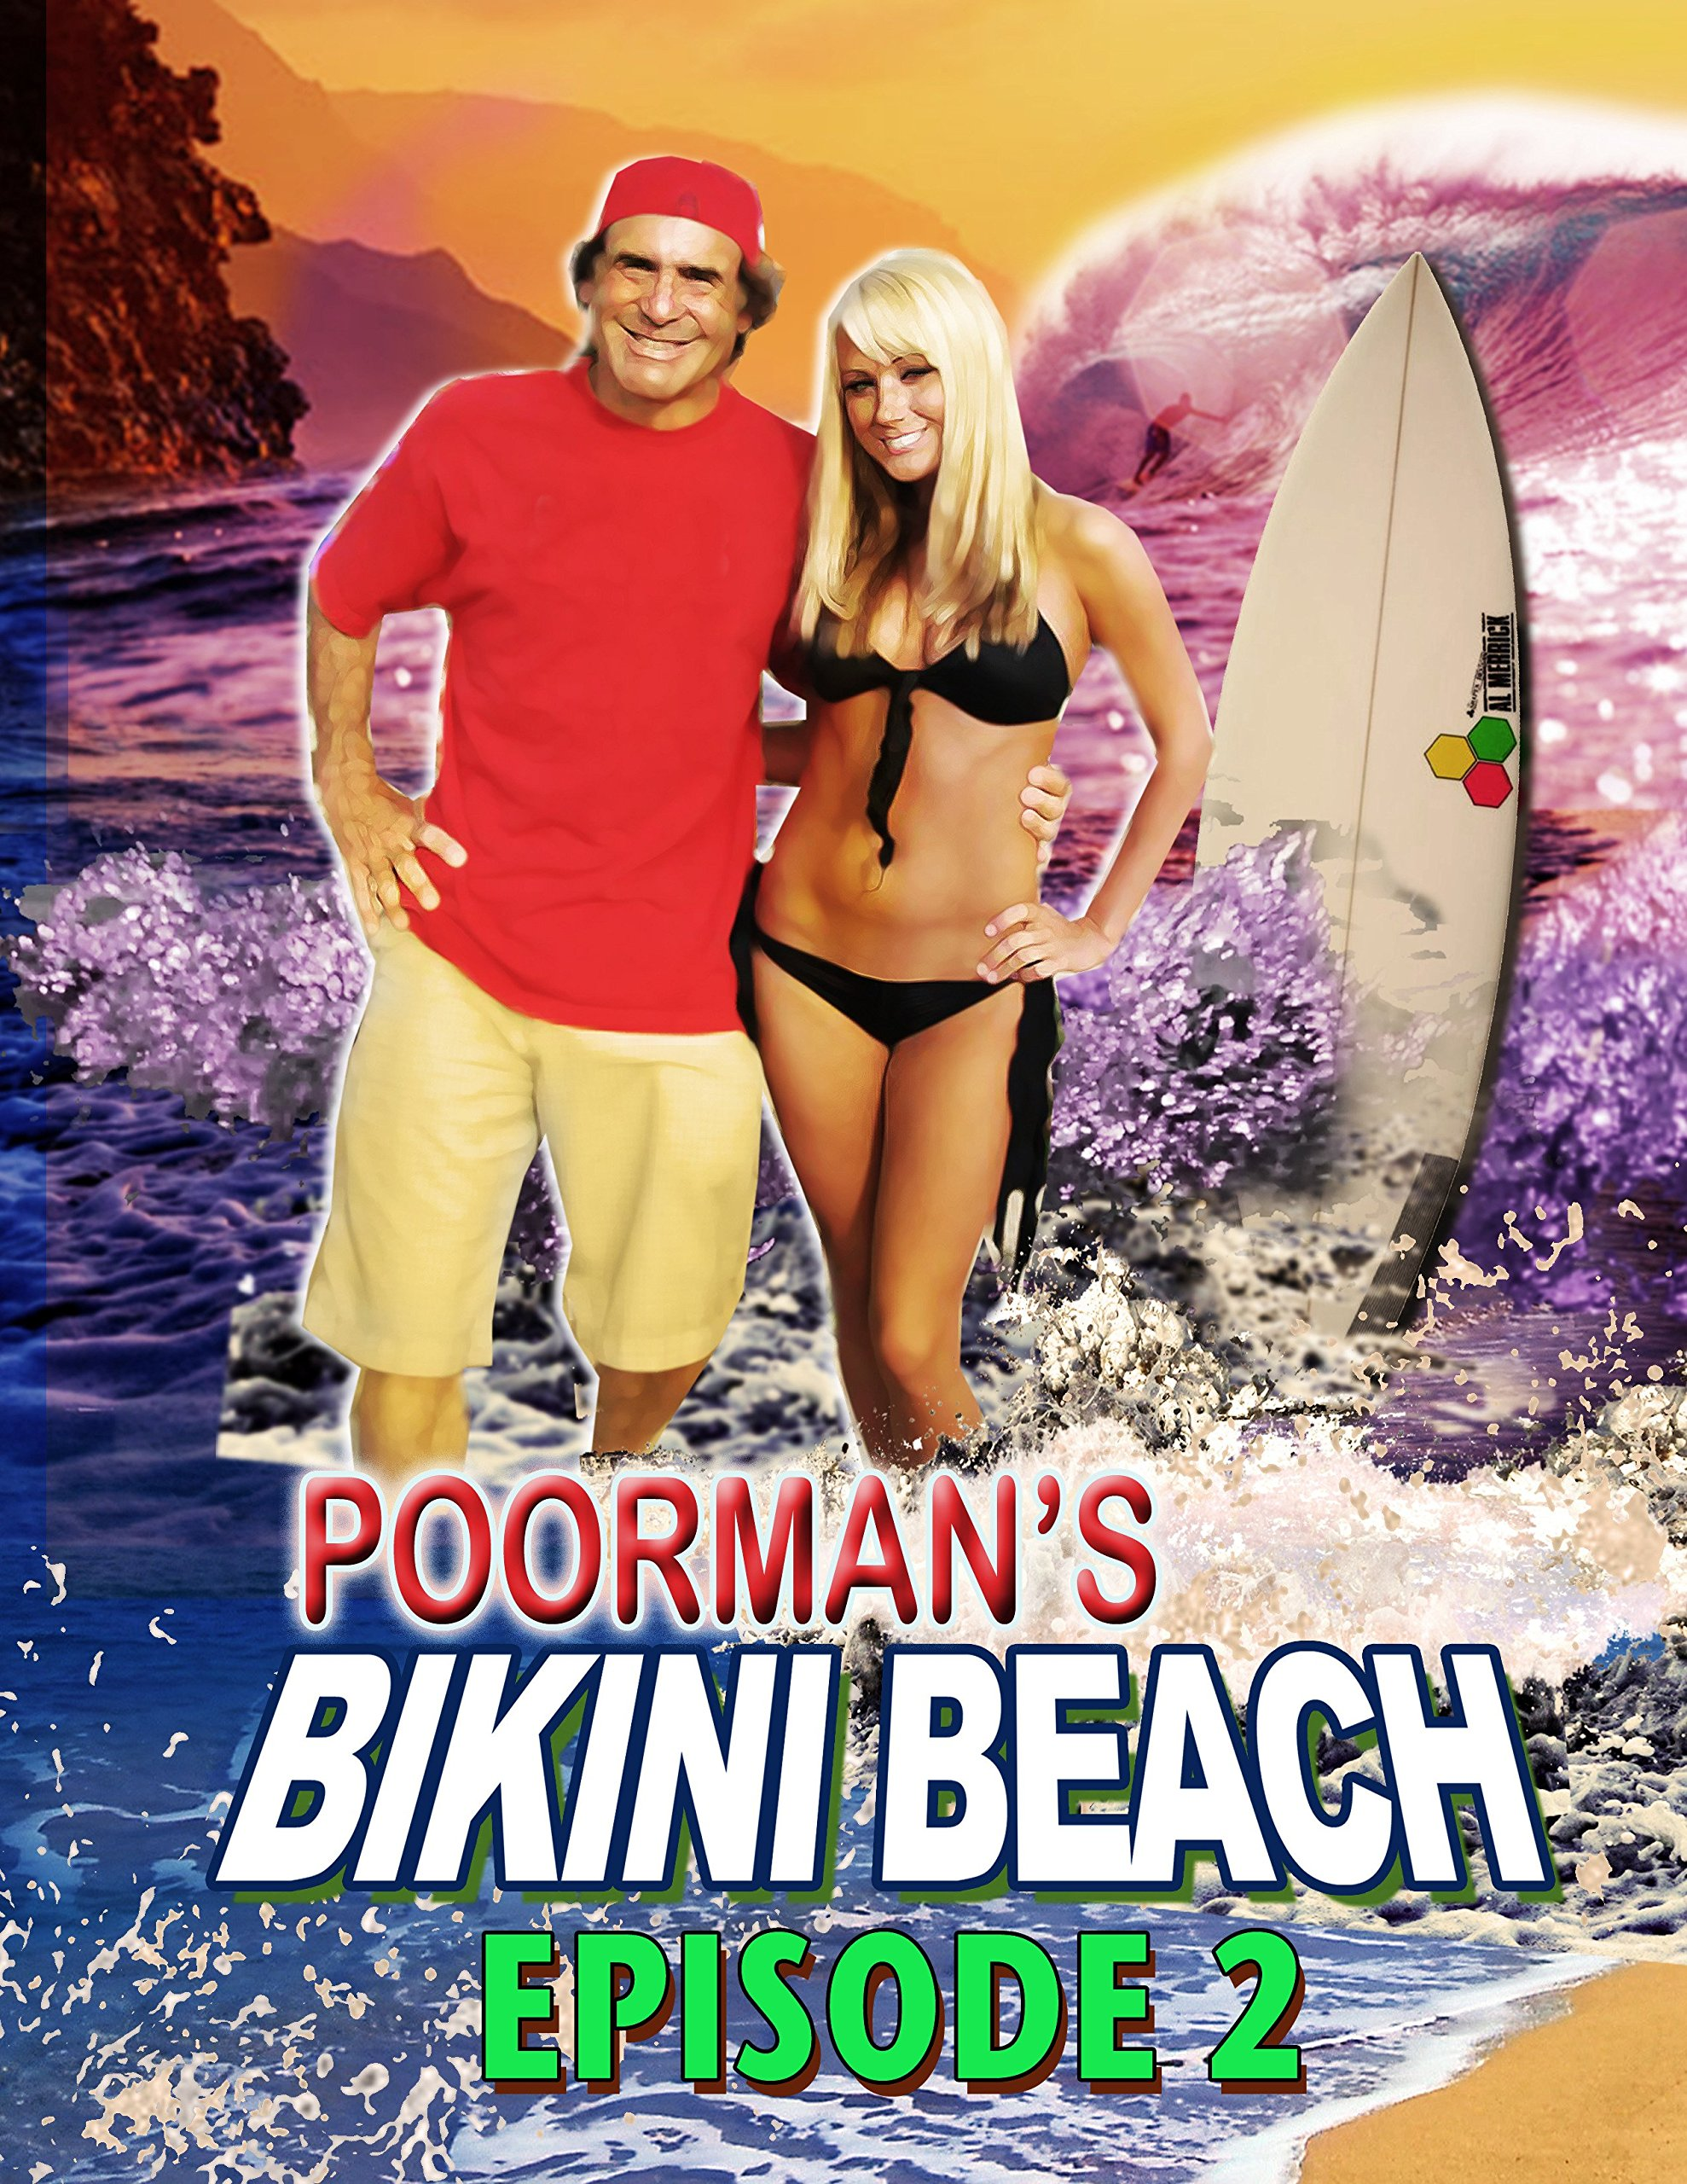 Poorman's Bikini Beach Episode 2 on Amazon Prime Video UK